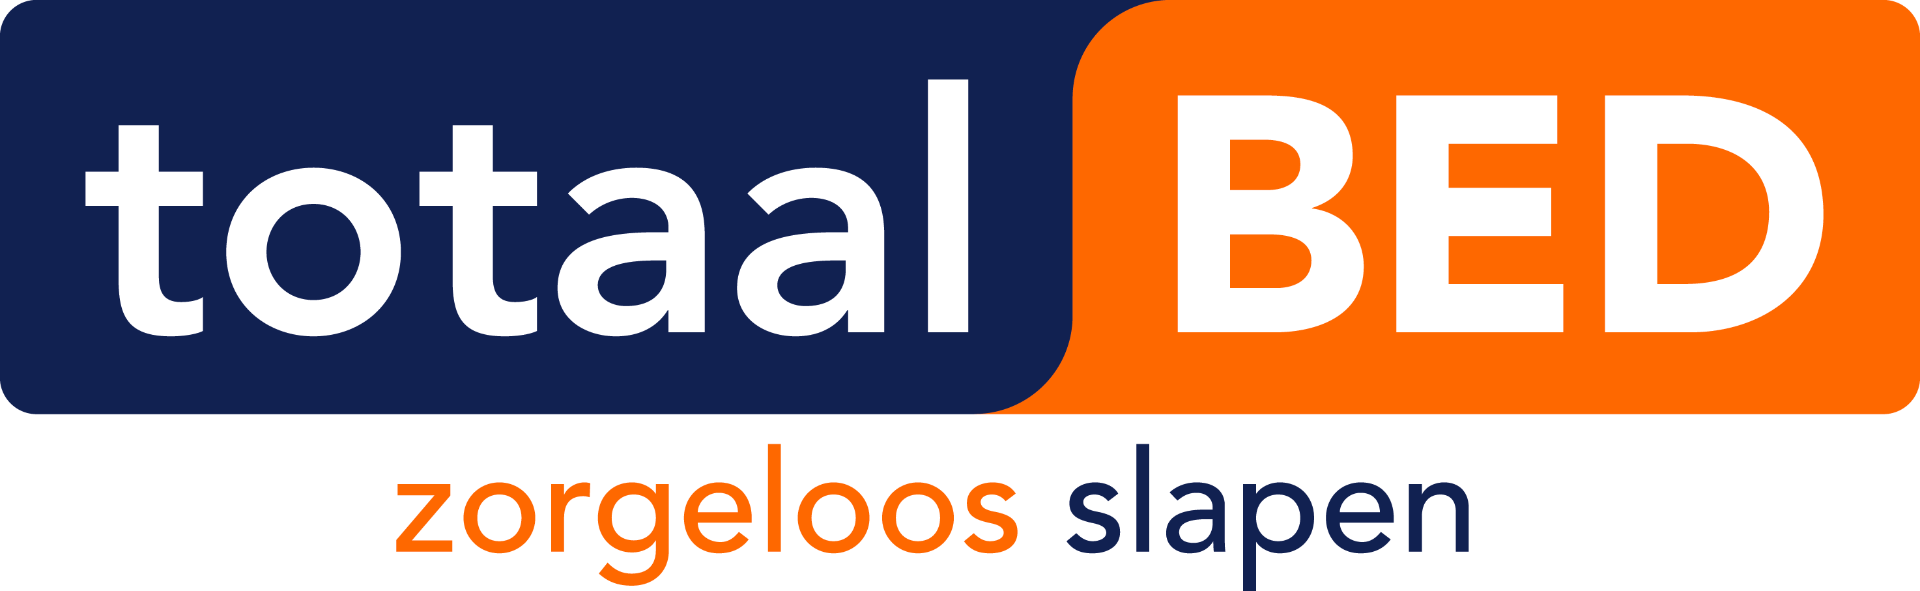 totaalBED_Logo.png